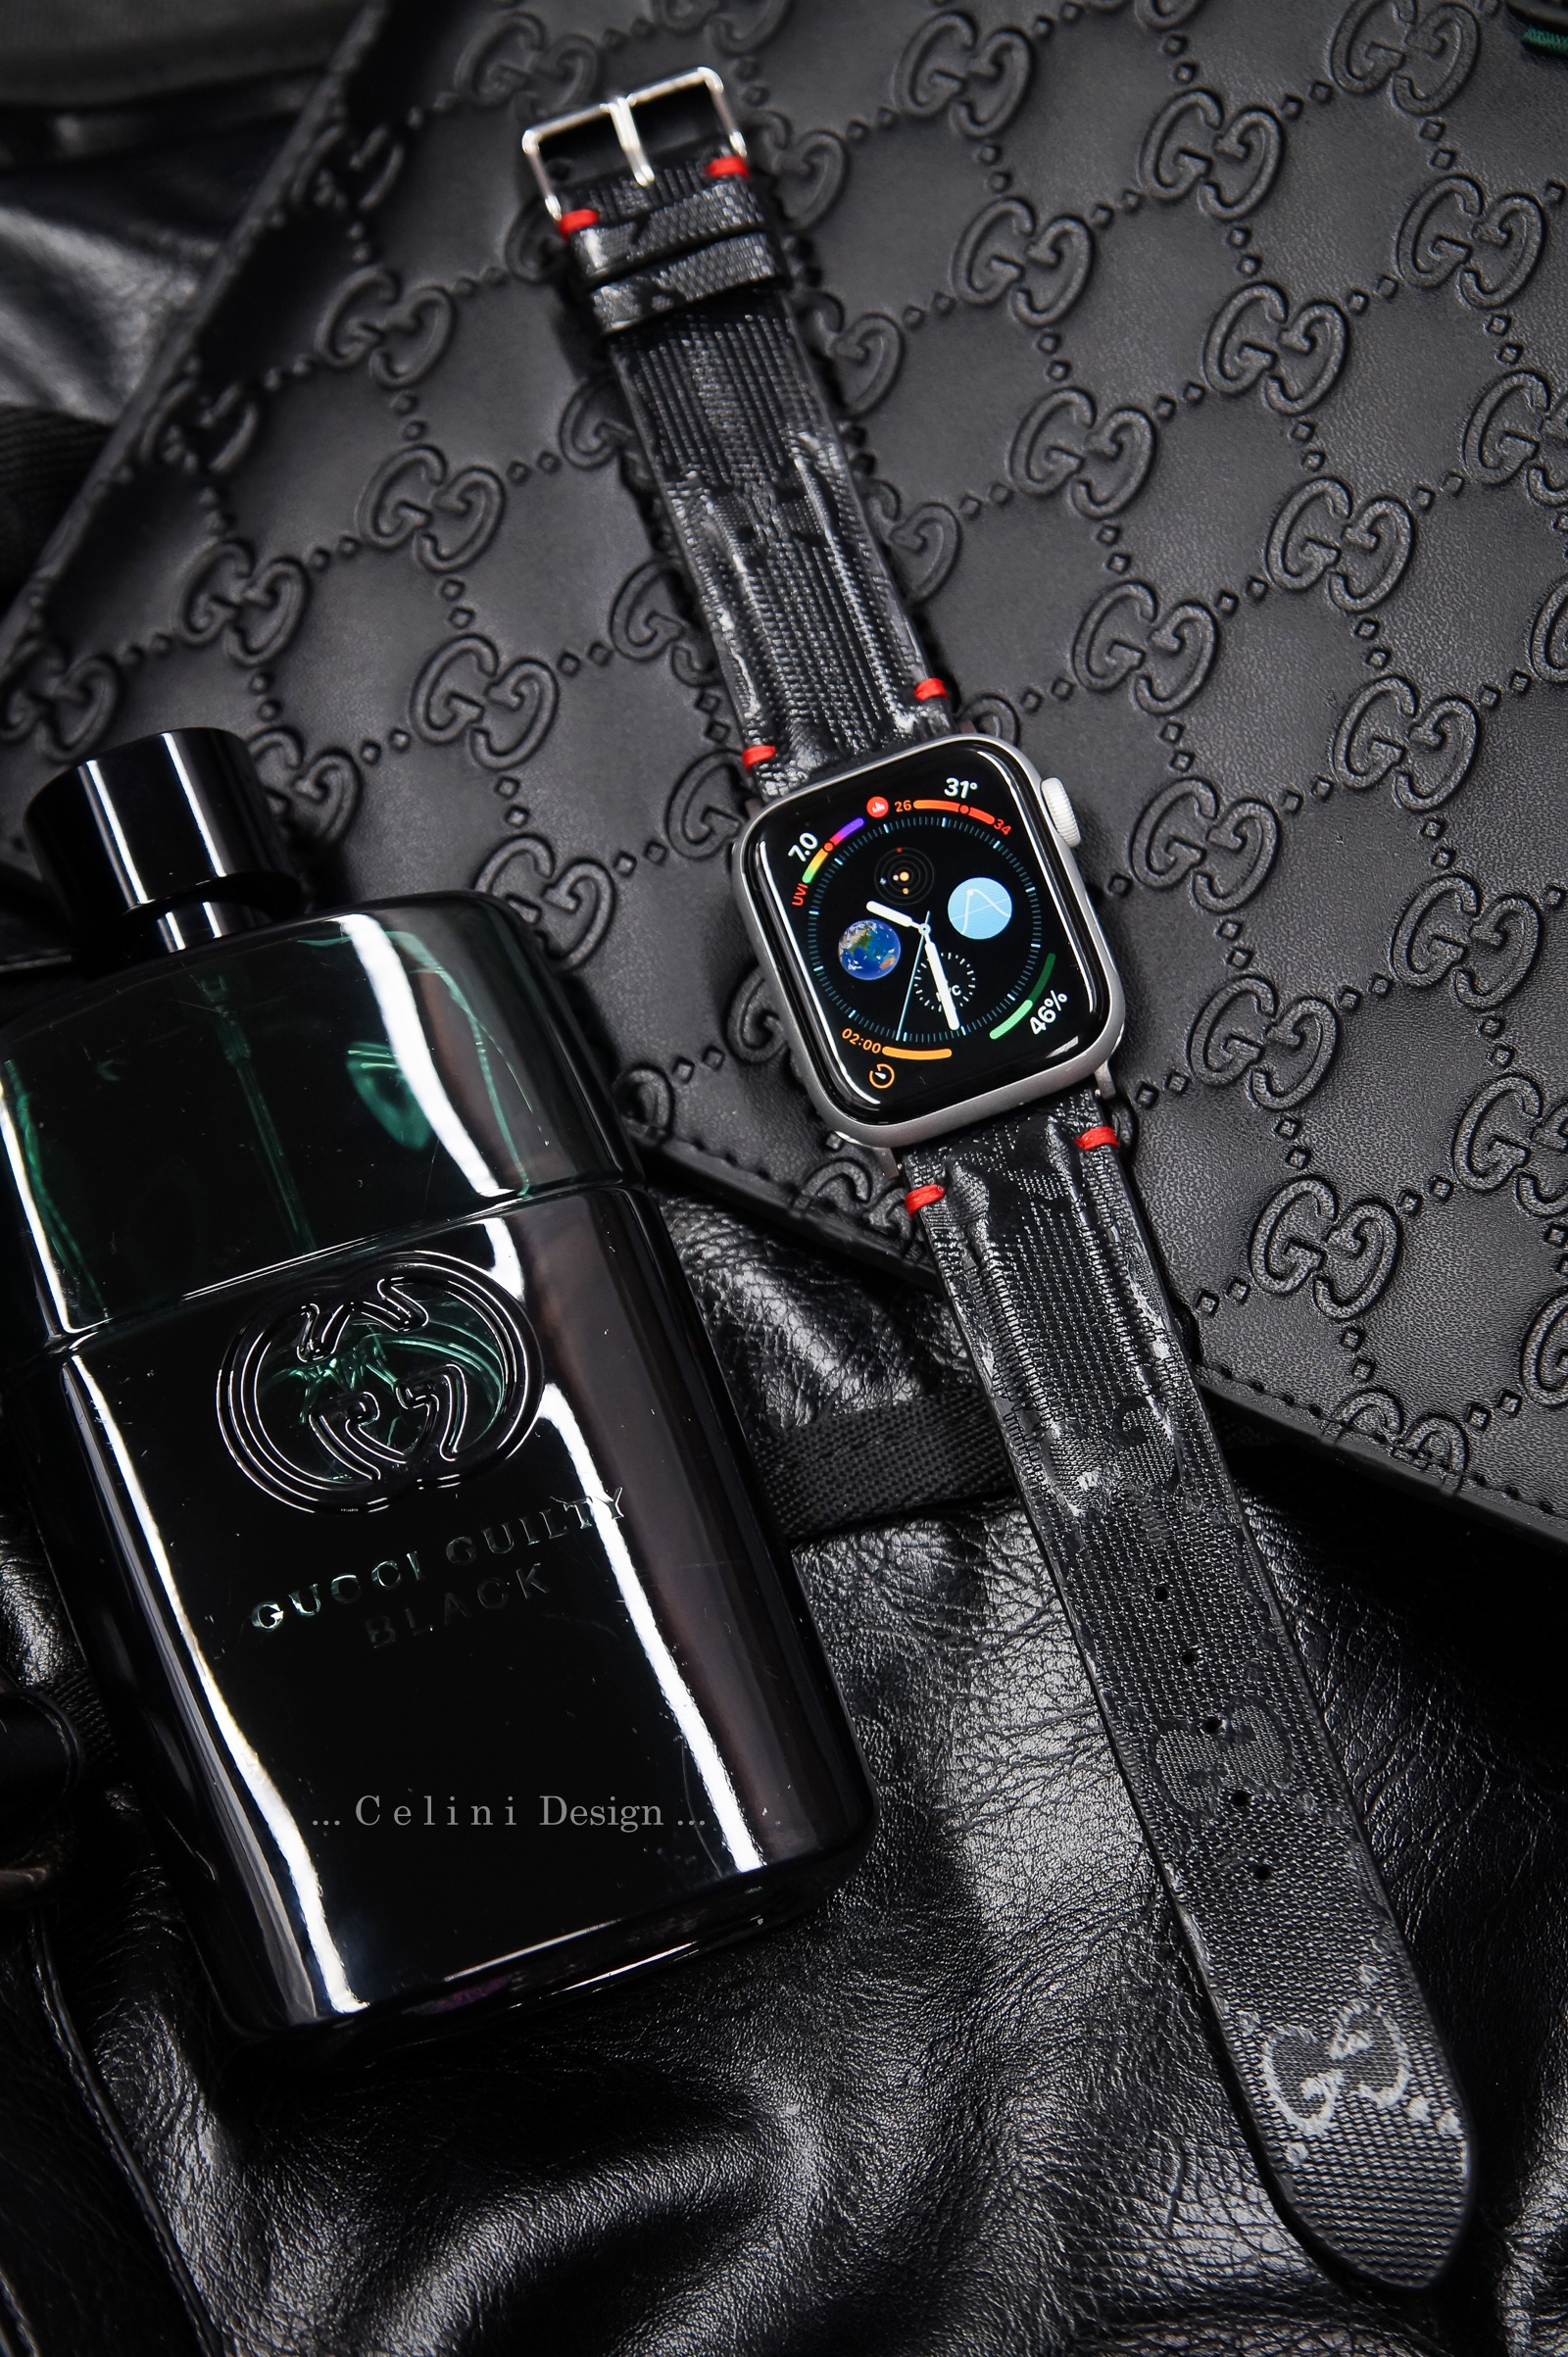 outlet store 20fc9 d759f Gucci Apple Watch Band Gucci iwatch Band | Gucci Watch Band | Apple Watch  Band 44mm 42mm 38mm Series 4, 3, 2, 1 | Gucci Apple Watch Series 4